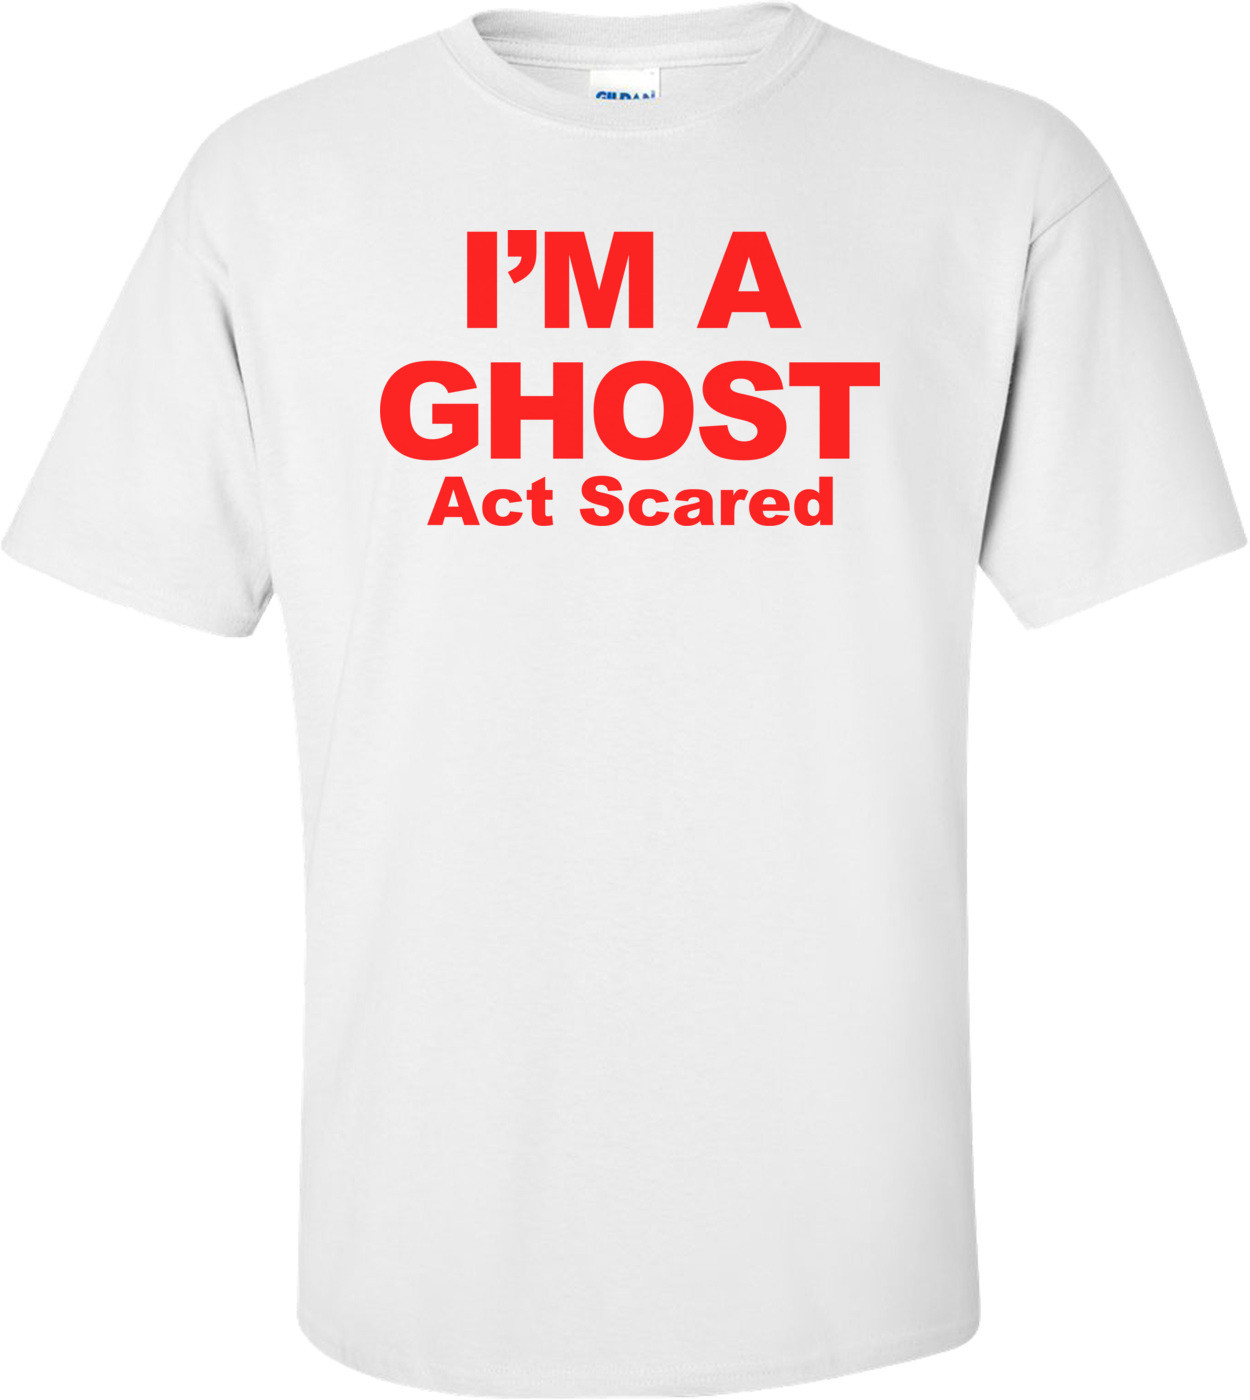 I'm A Ghost Act Scared - Halloween Shirt